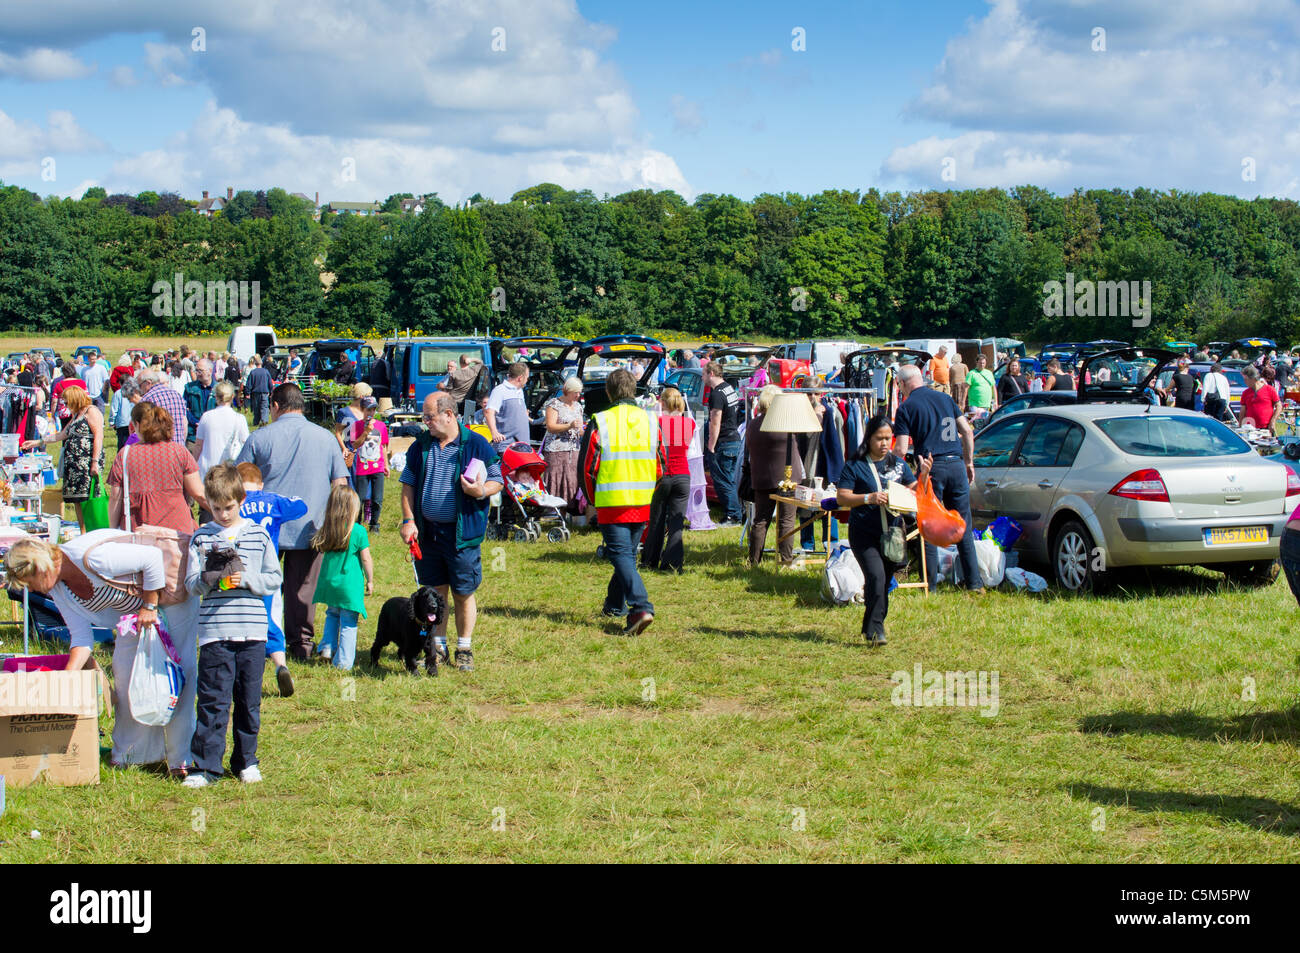 Sellers and buyers at a car boot sale stock image